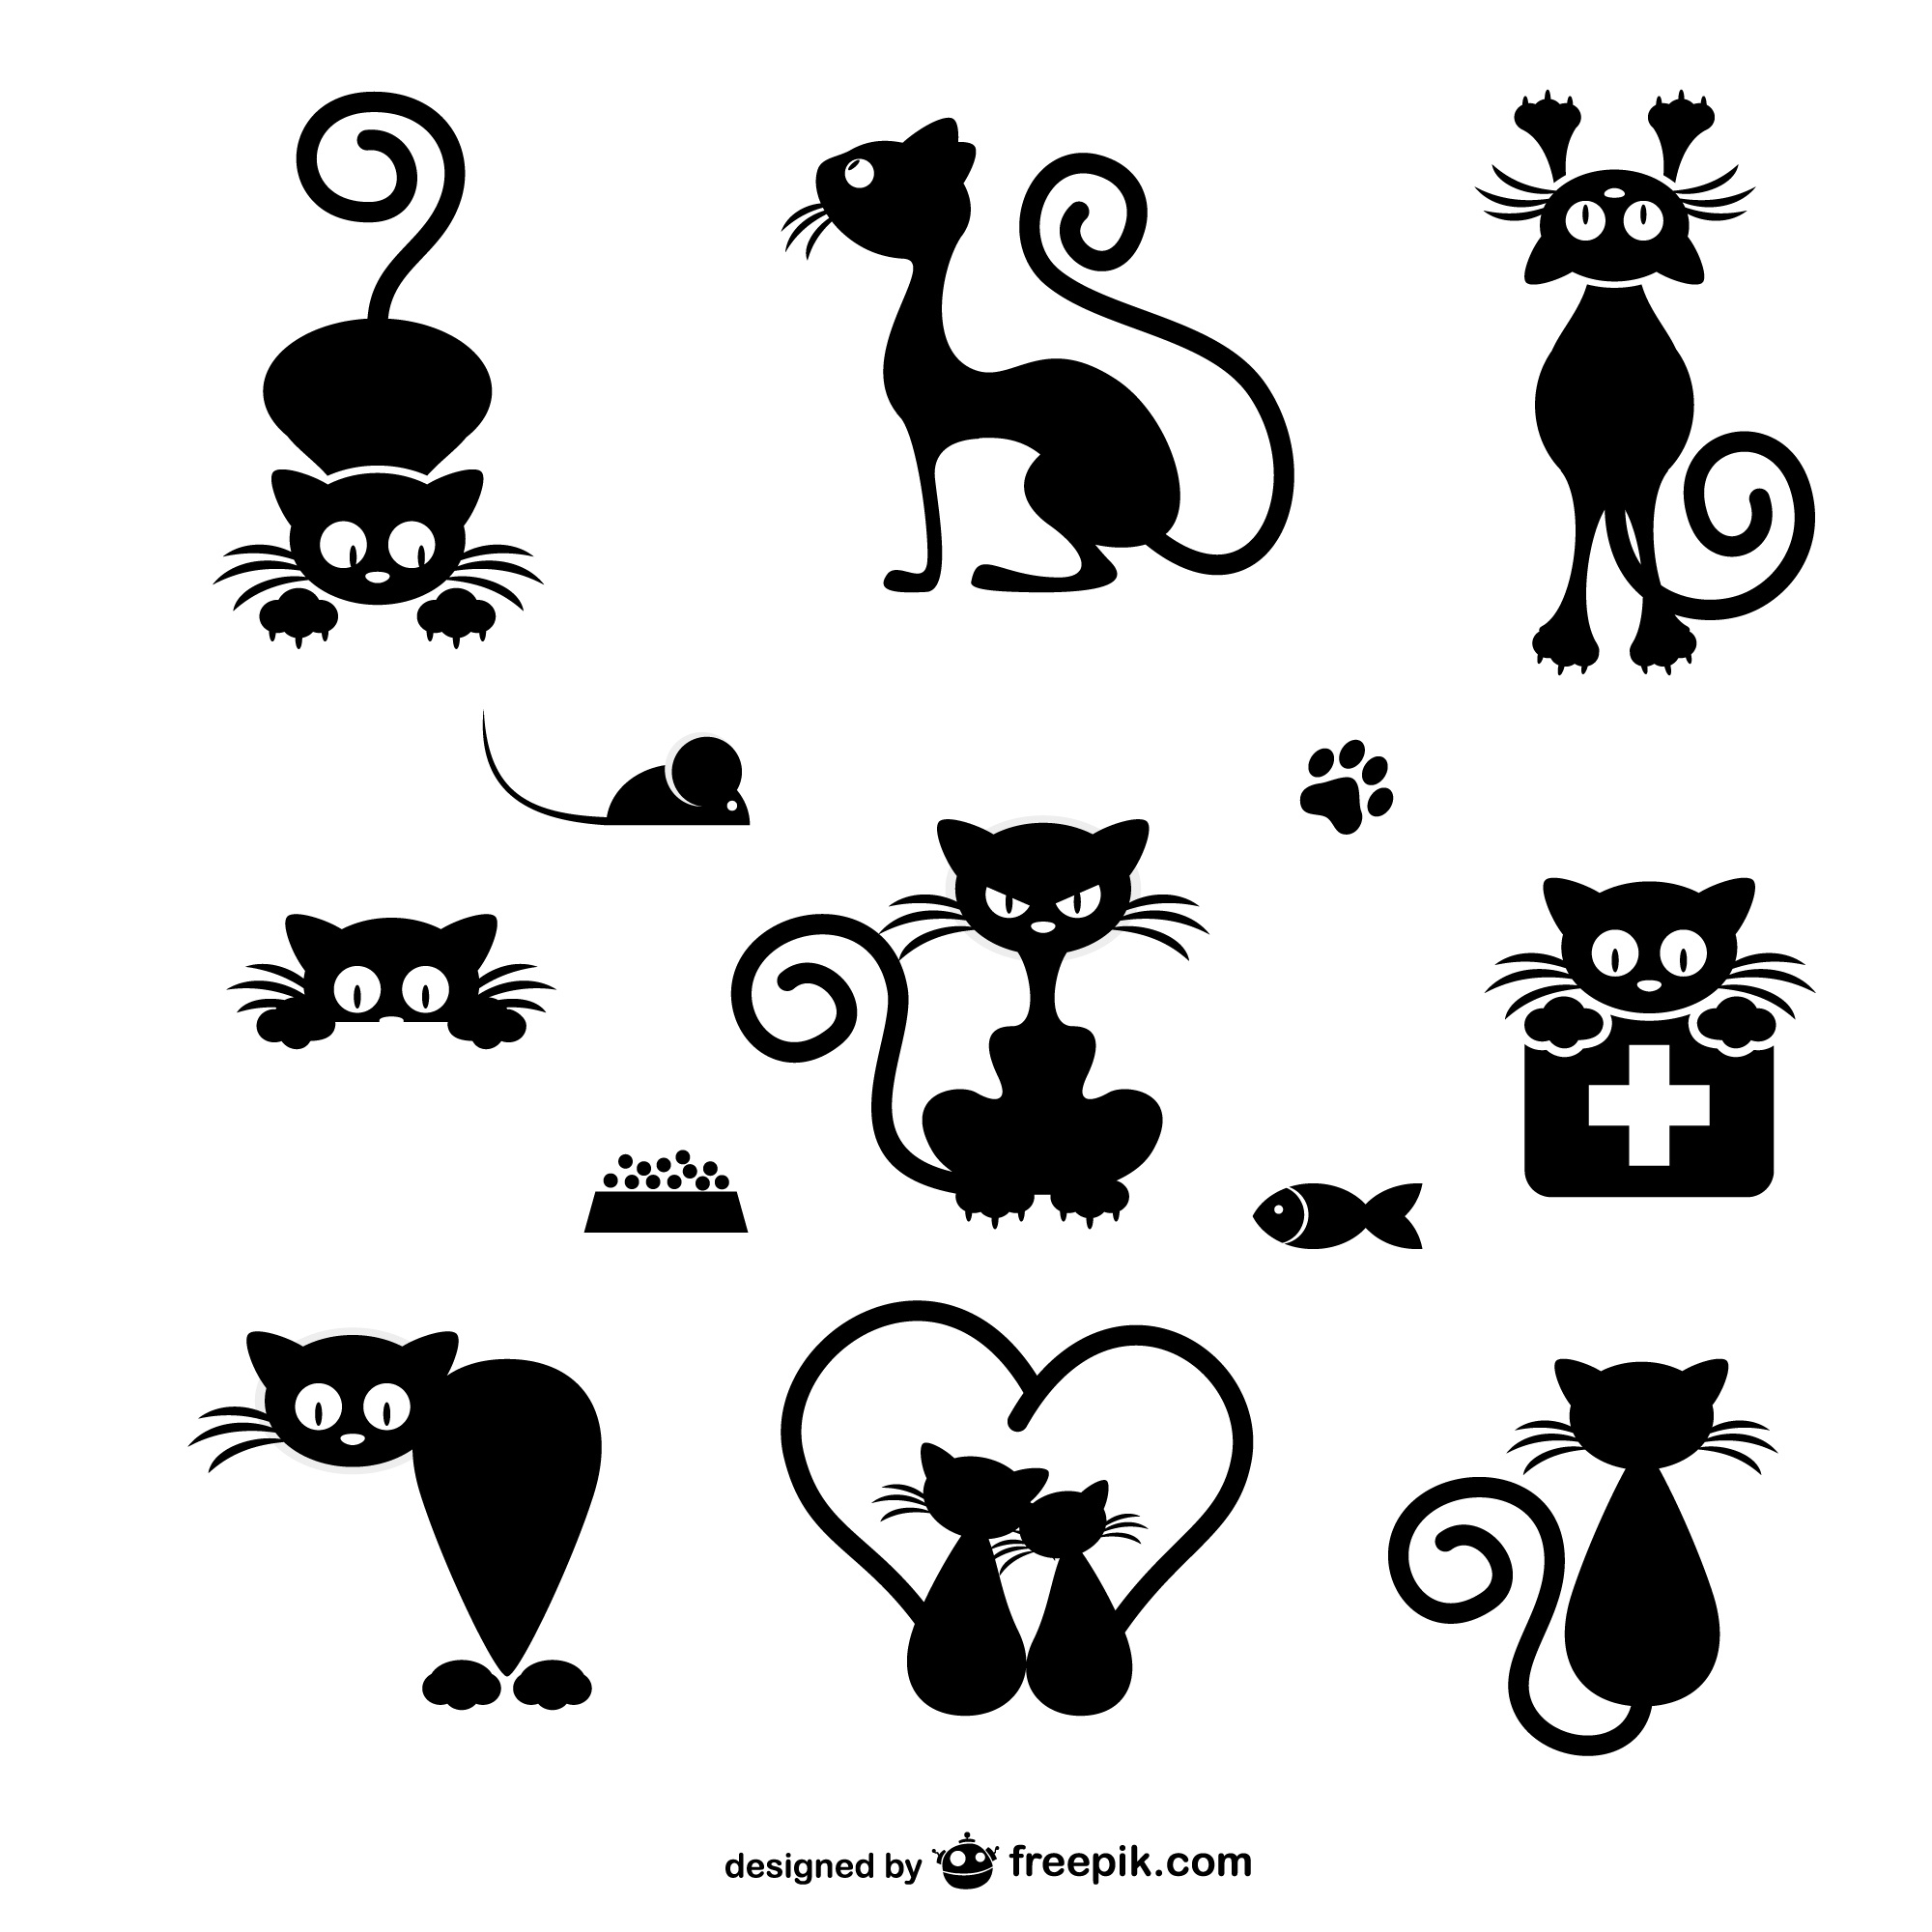 Cats silhouettes collection